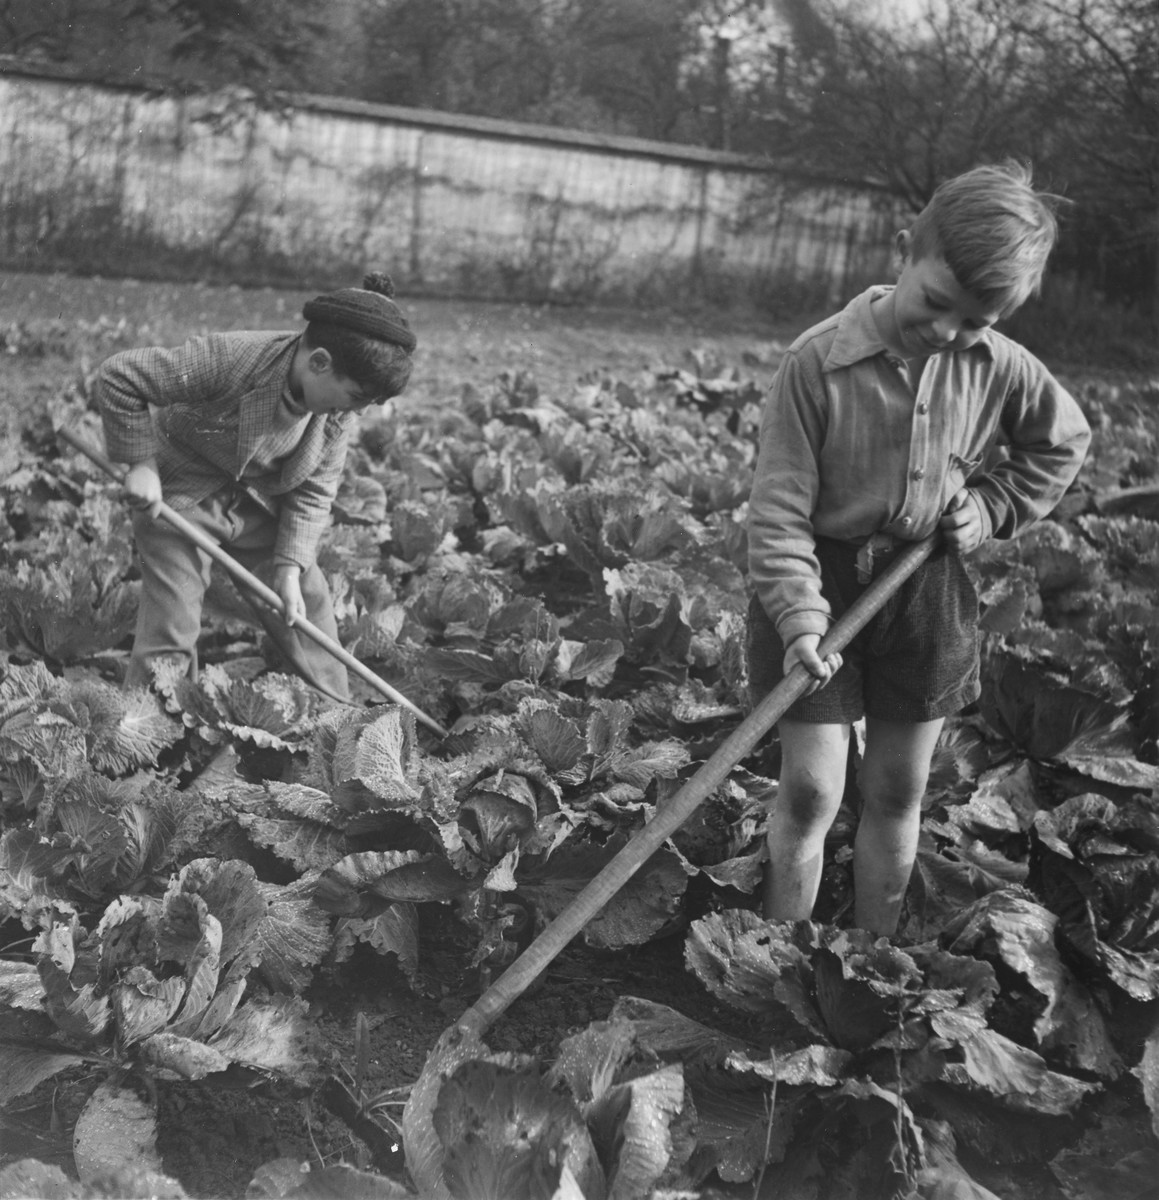 Children work in the garden of a post-war OSE home, possibly La Forge in Fontenay-aux-Roses.